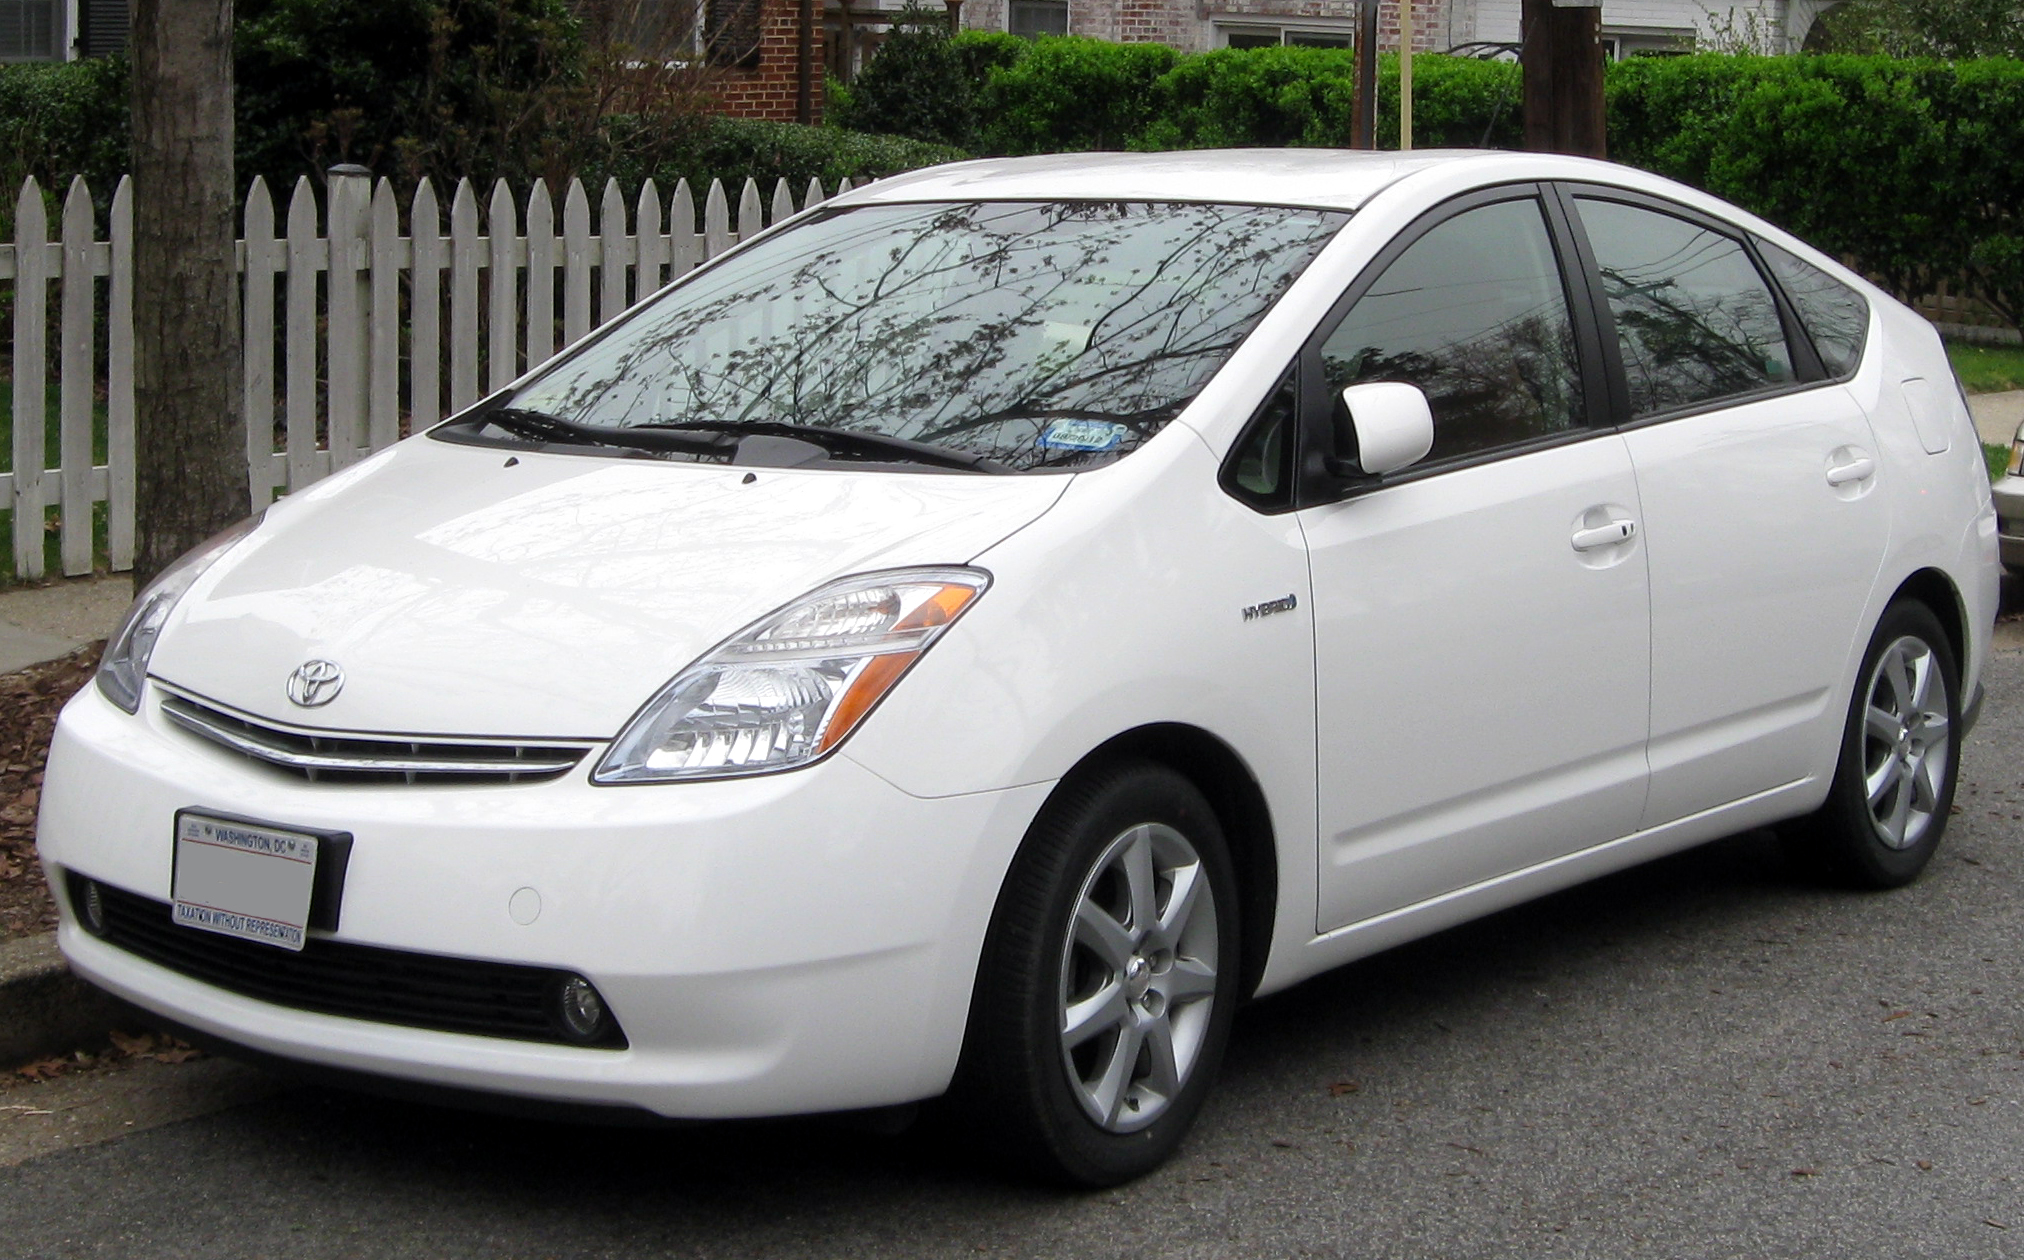 2007 Toyota Prius Information And Photos Momentcar